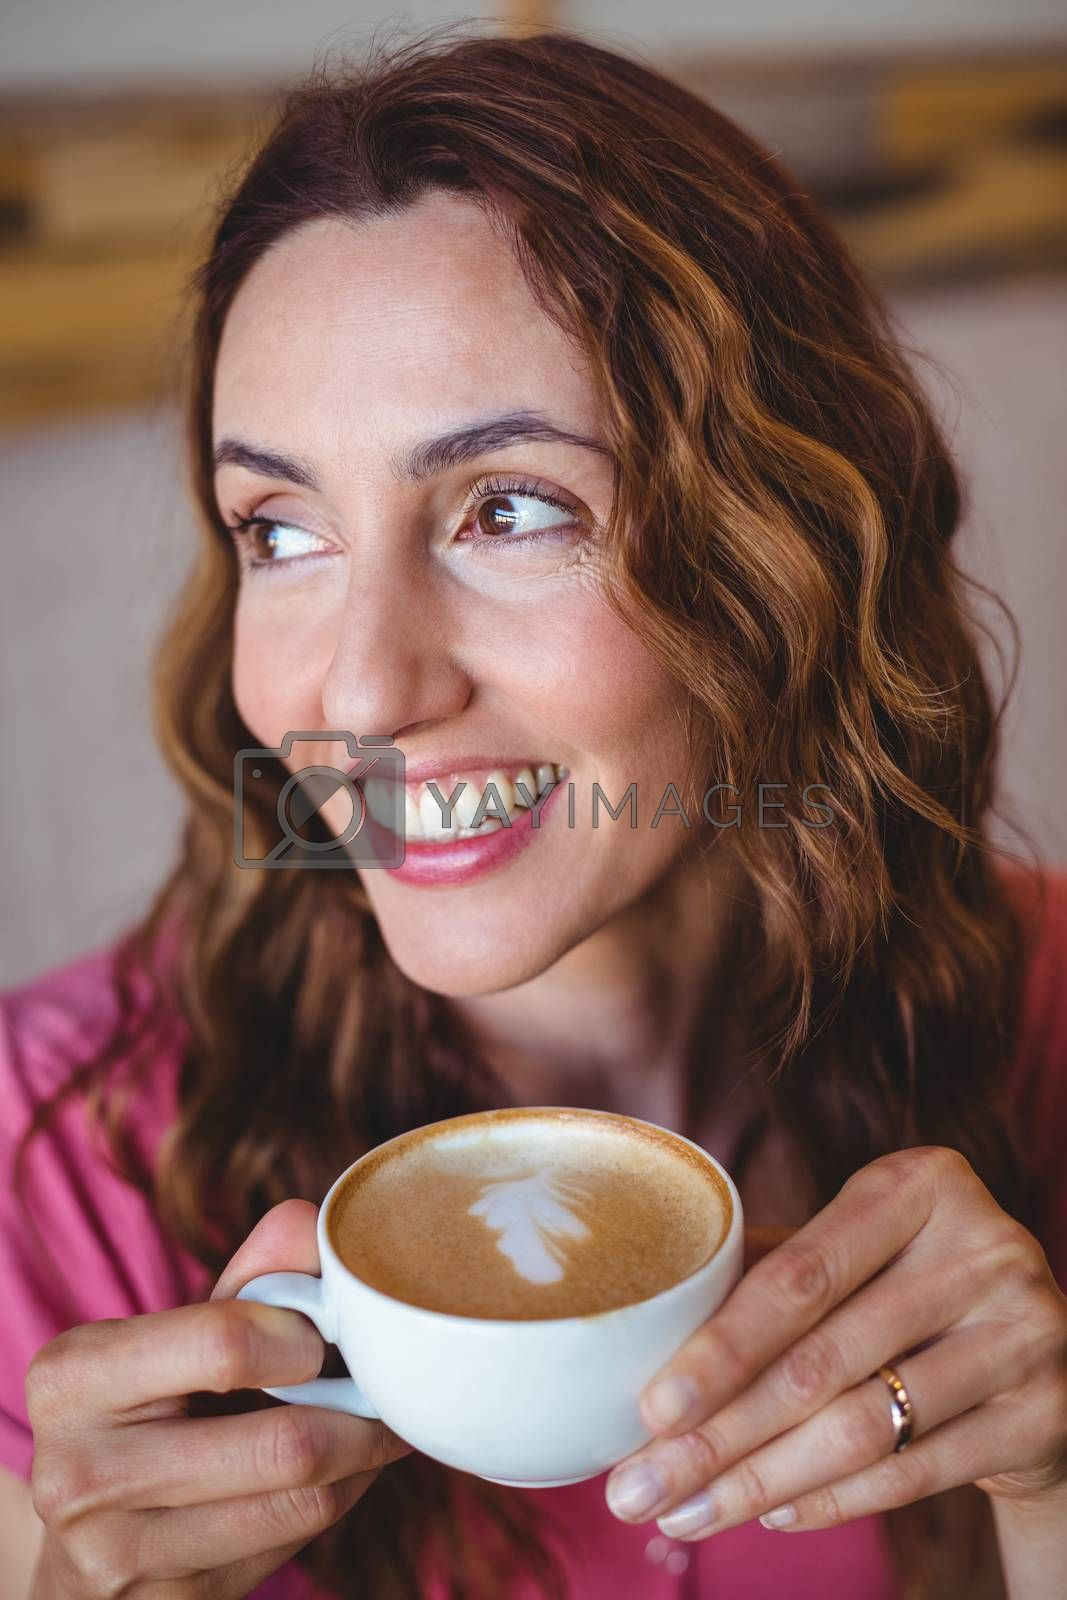 Royalty free image of Pretty brunette having cup of coffee by Wavebreakmedia